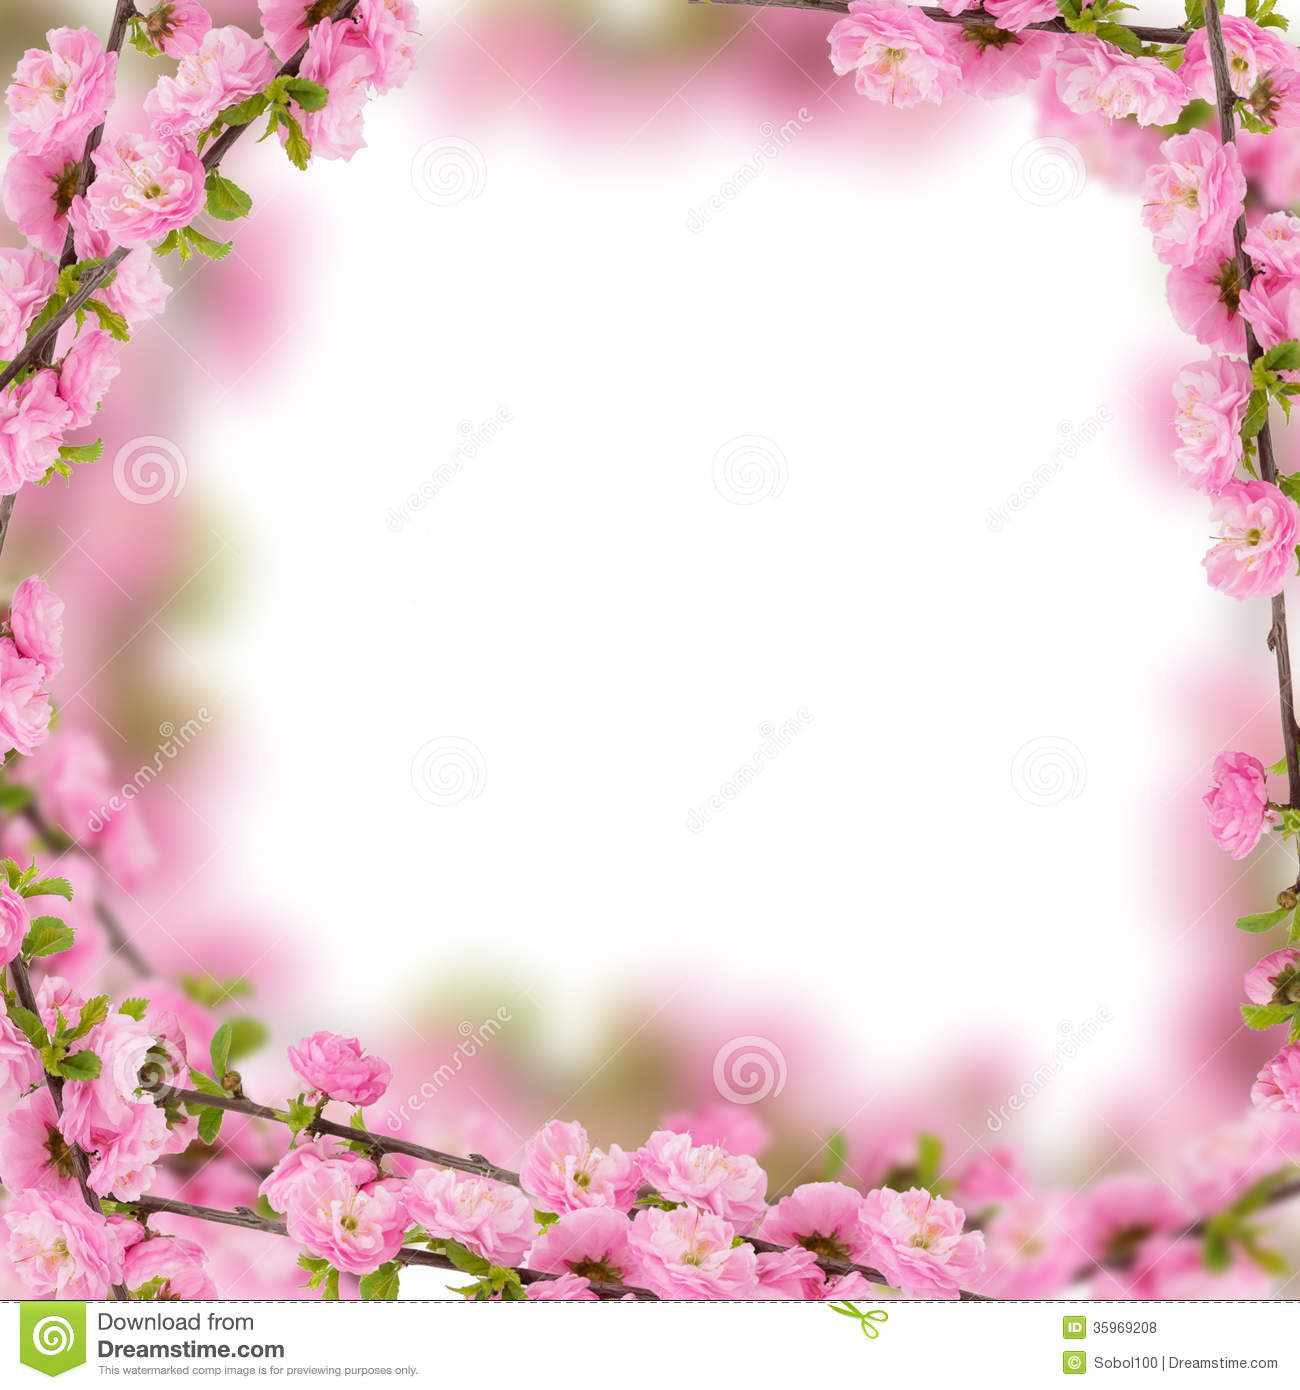 Fresh almond flowers on pink background stock photo image of fresh almond flowers on pink background mother blank mightylinksfo Choice Image